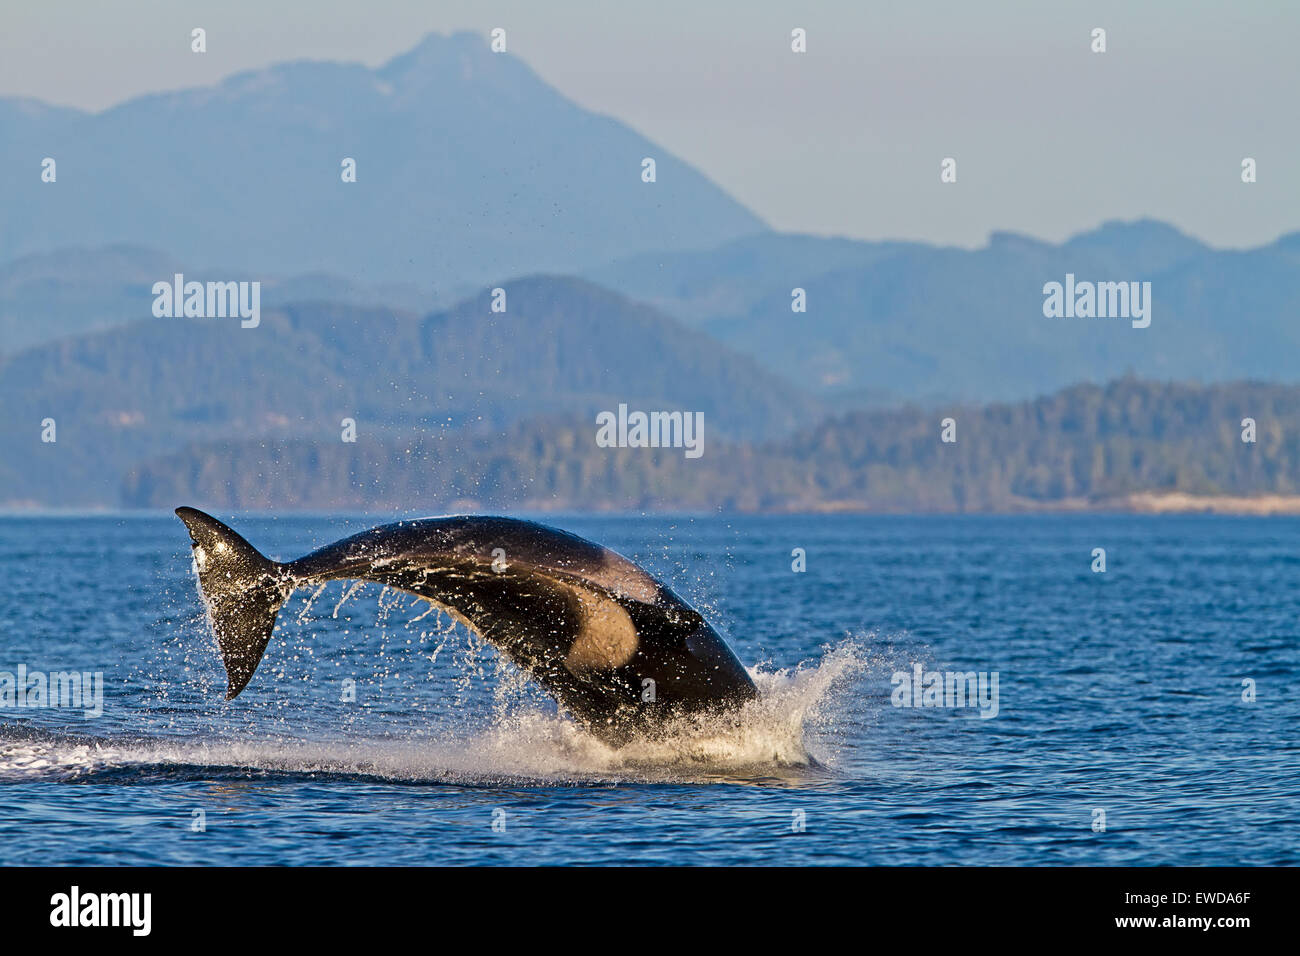 Transient killer whales (orca, Orcinus orca, T30's & T137's) after killing a sea lion off Malcolm Island - Stock Image